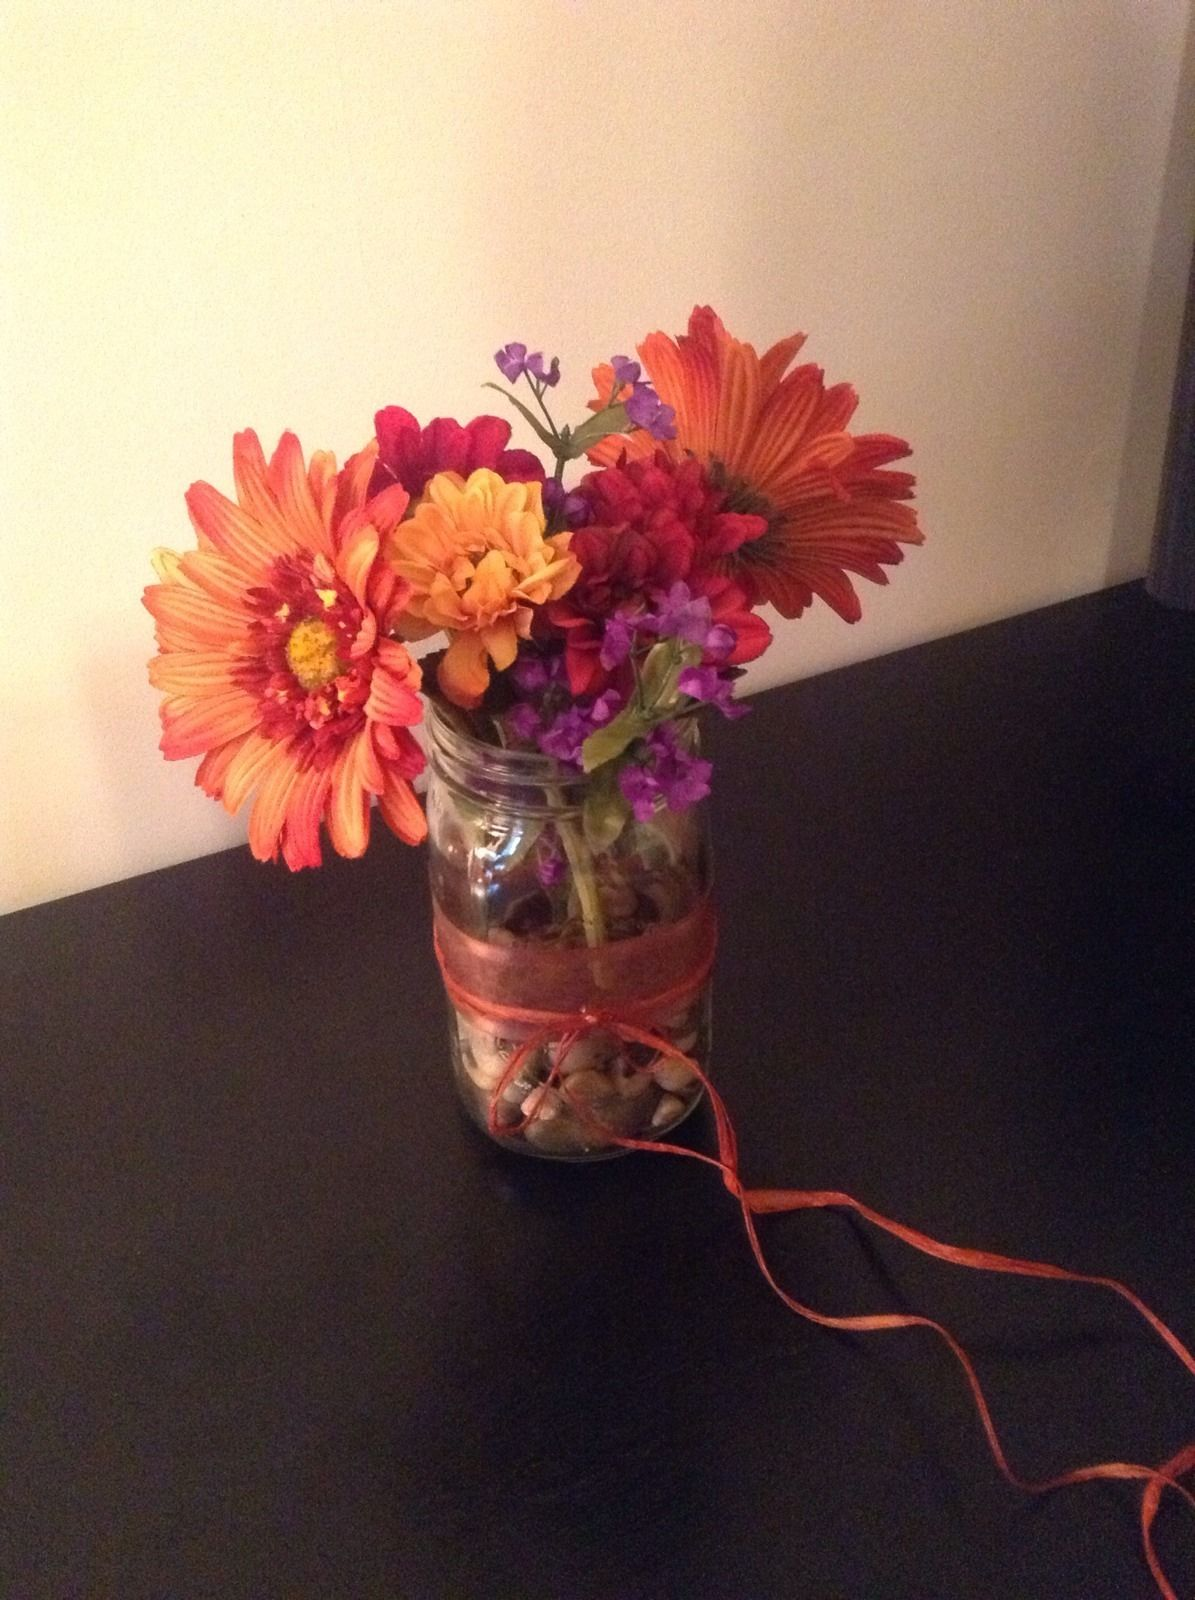 For sale fall centerpieces flowers for 10 sets plus extras are for sale fall centerpieces flowers for 10 sets plus extras are available note izmirmasajfo Image collections